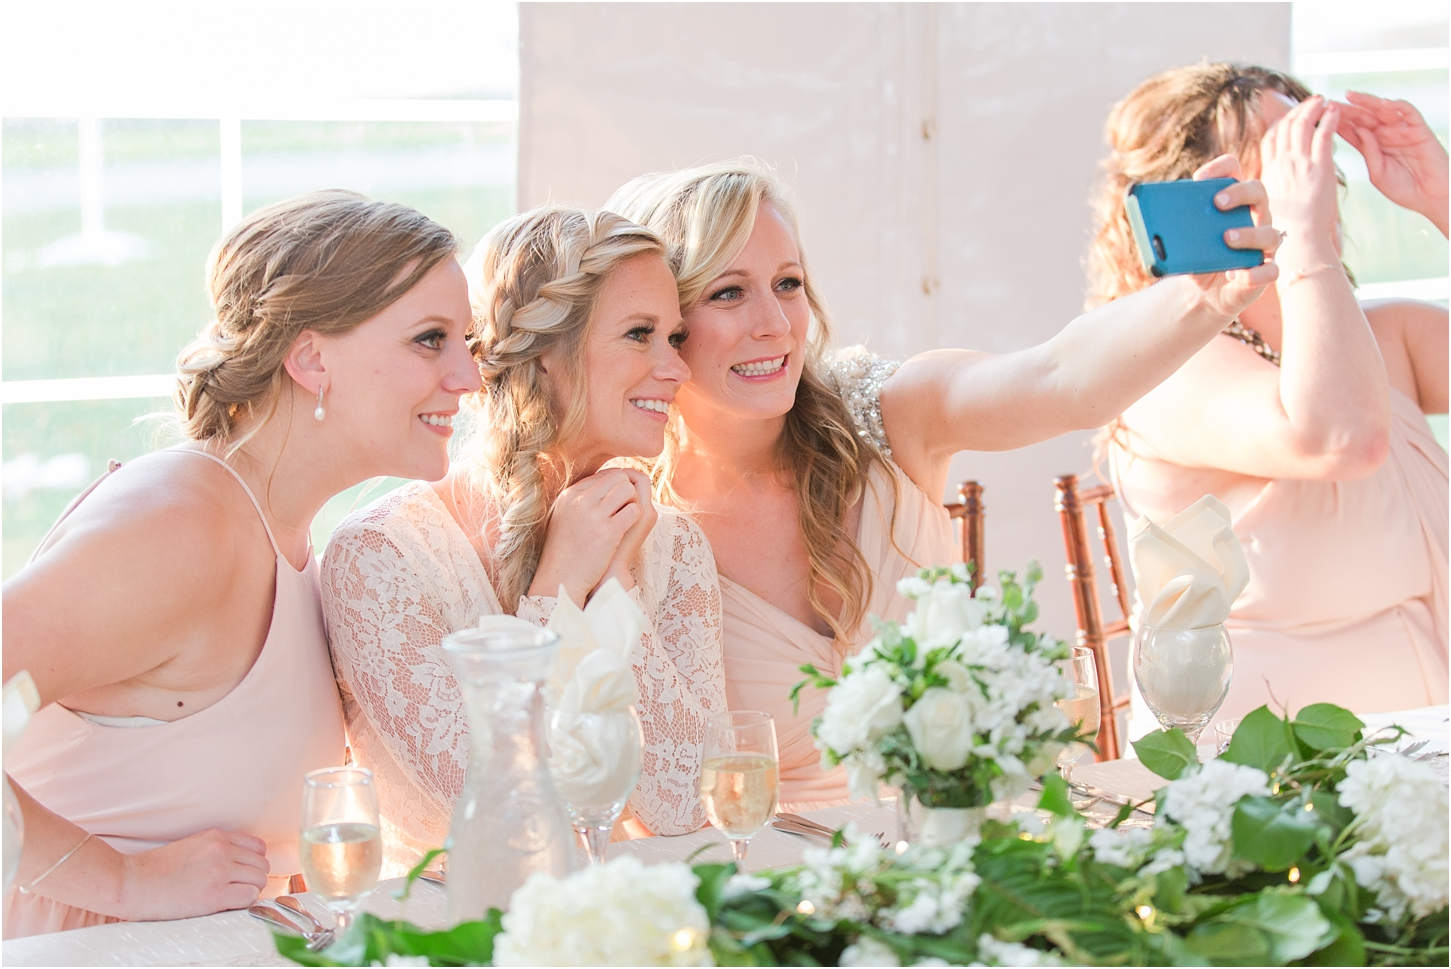 why-you-should-have-an-unplugged-wedding-by-courtney-carolyn-photography_0046.jpg